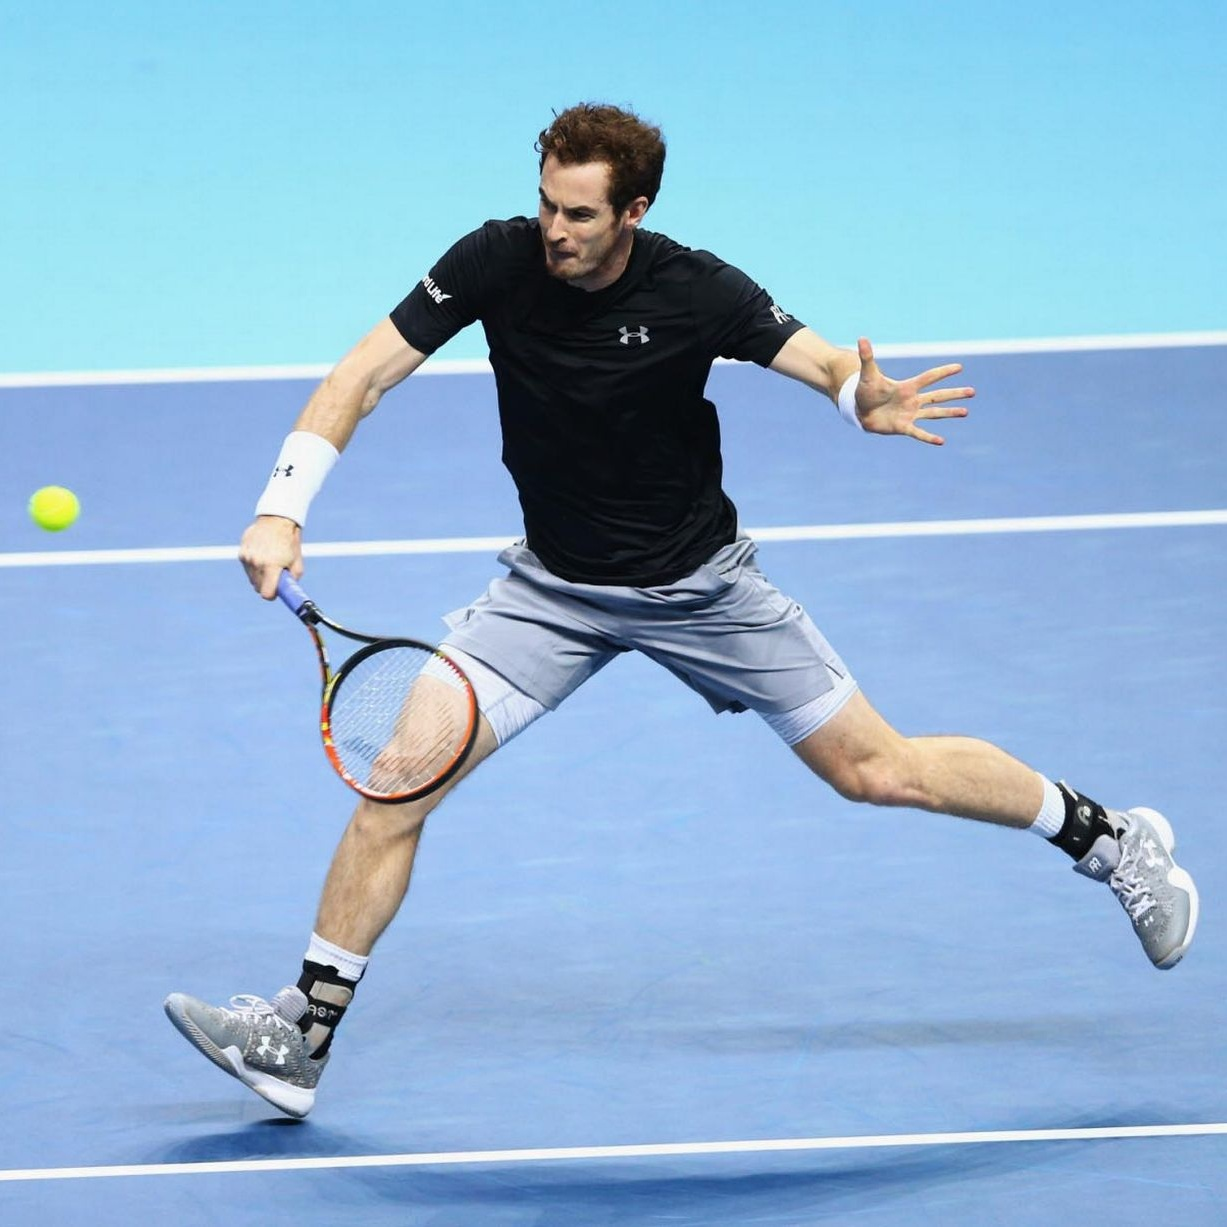 Andy-Murray-David-Ferrer.jpg